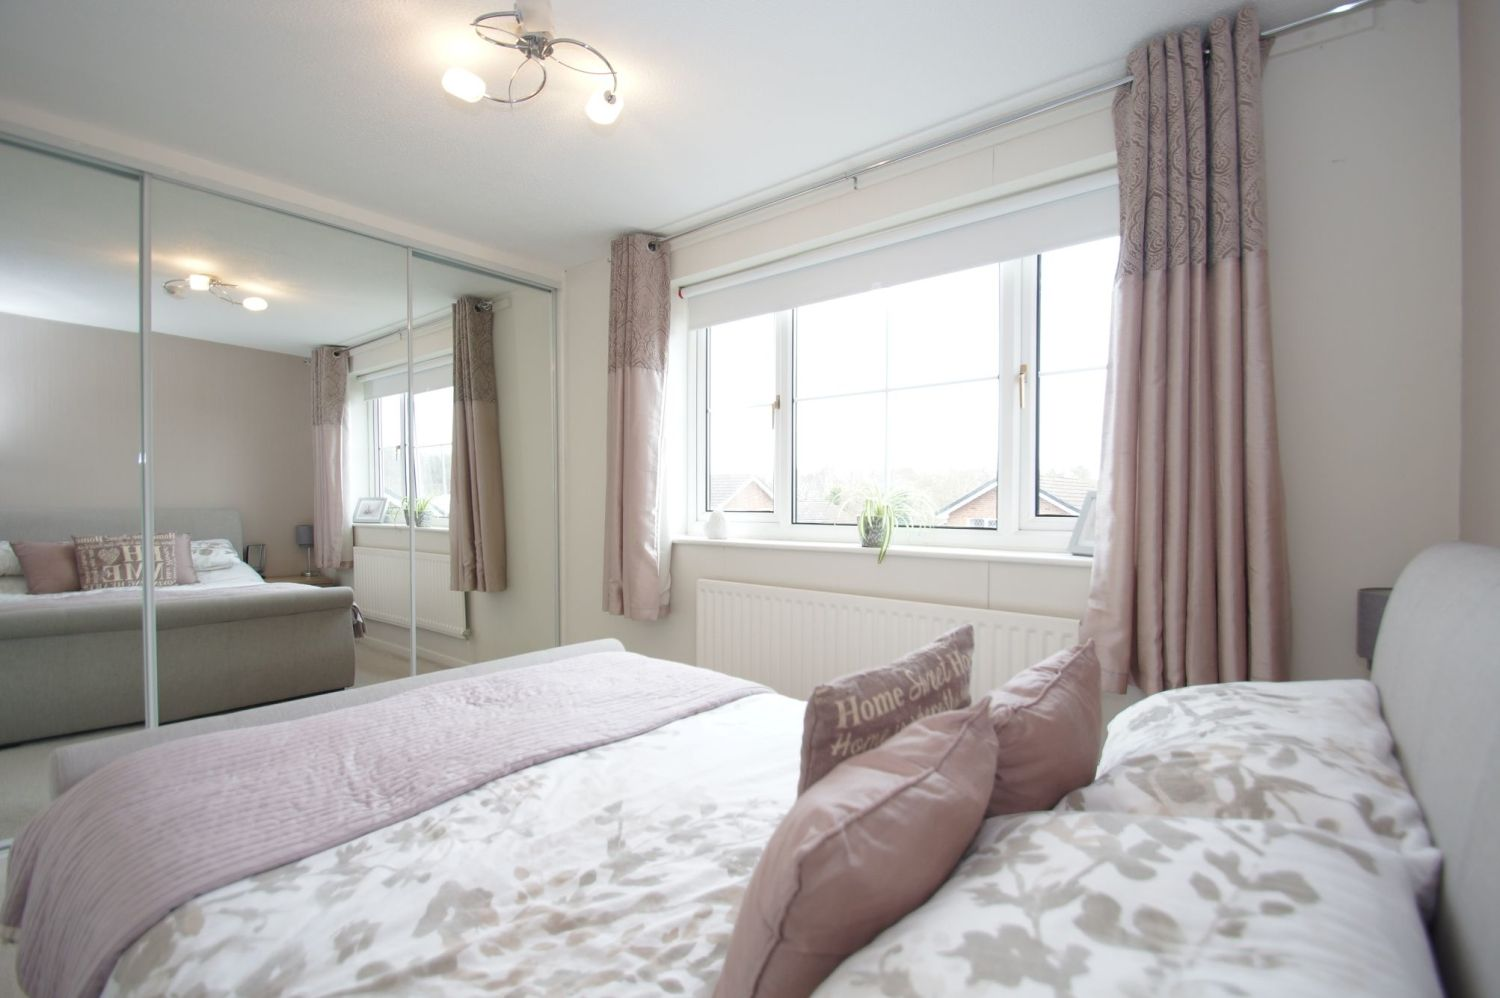 3 bed detached for sale in Painswick Close, Oakenshaw  - Property Image 10